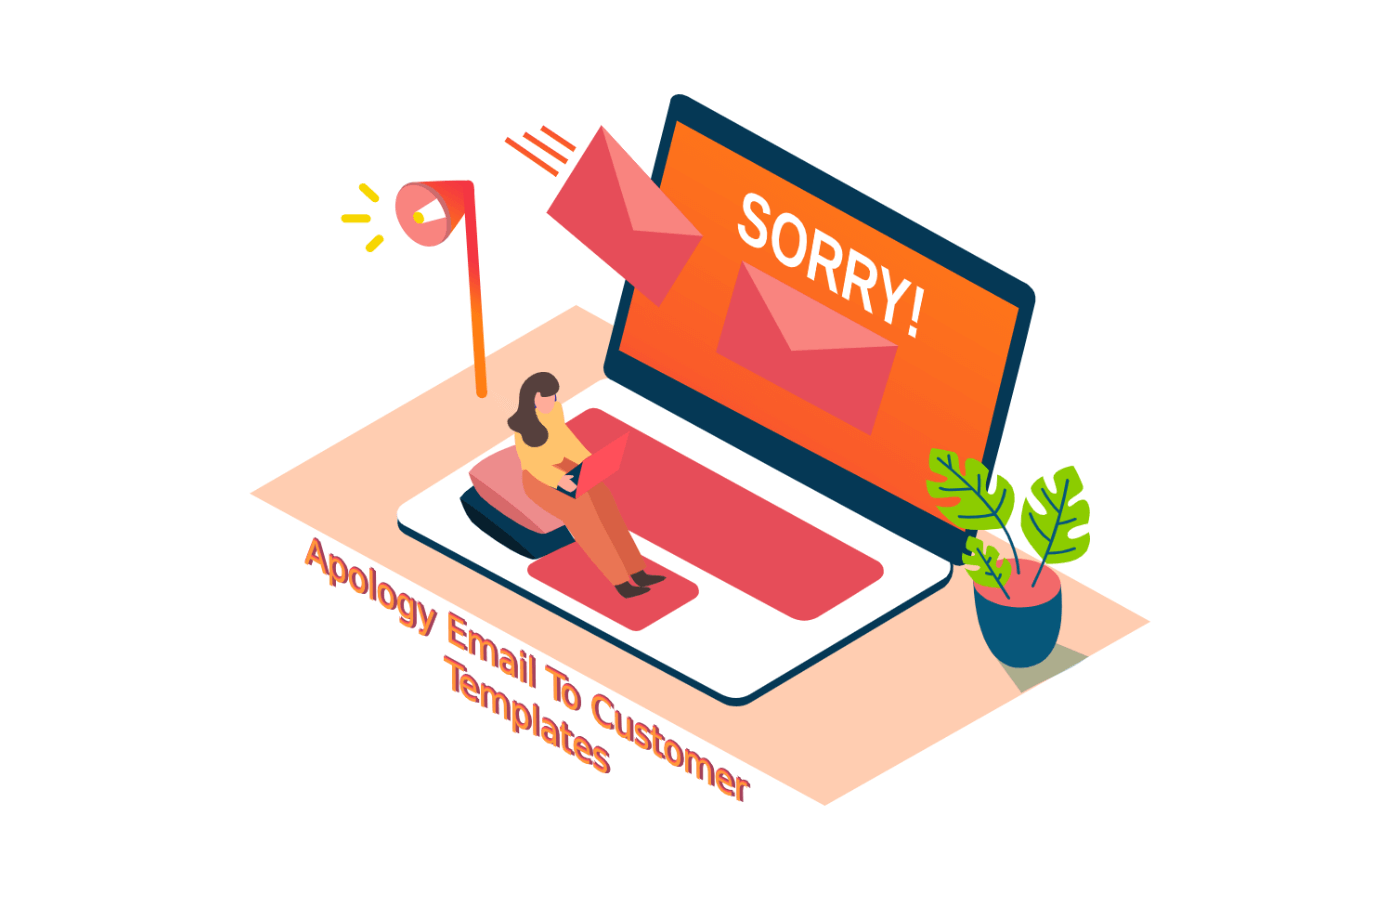 apology_email_to_customer_template_examples